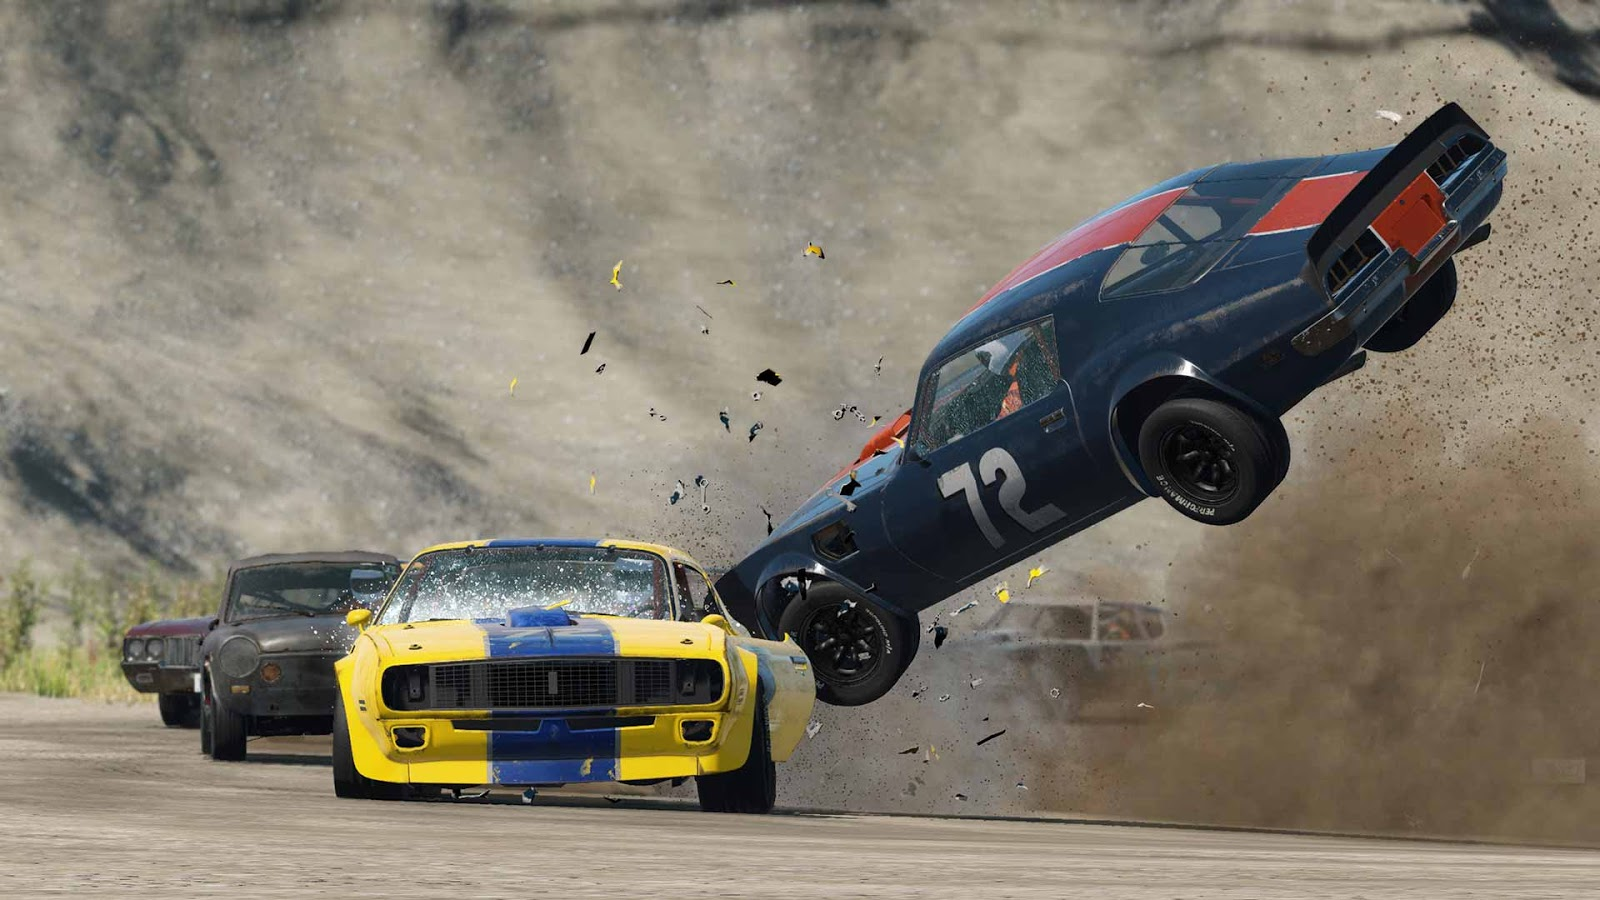 Racing Games Are Making their Way Back into the Mainstream